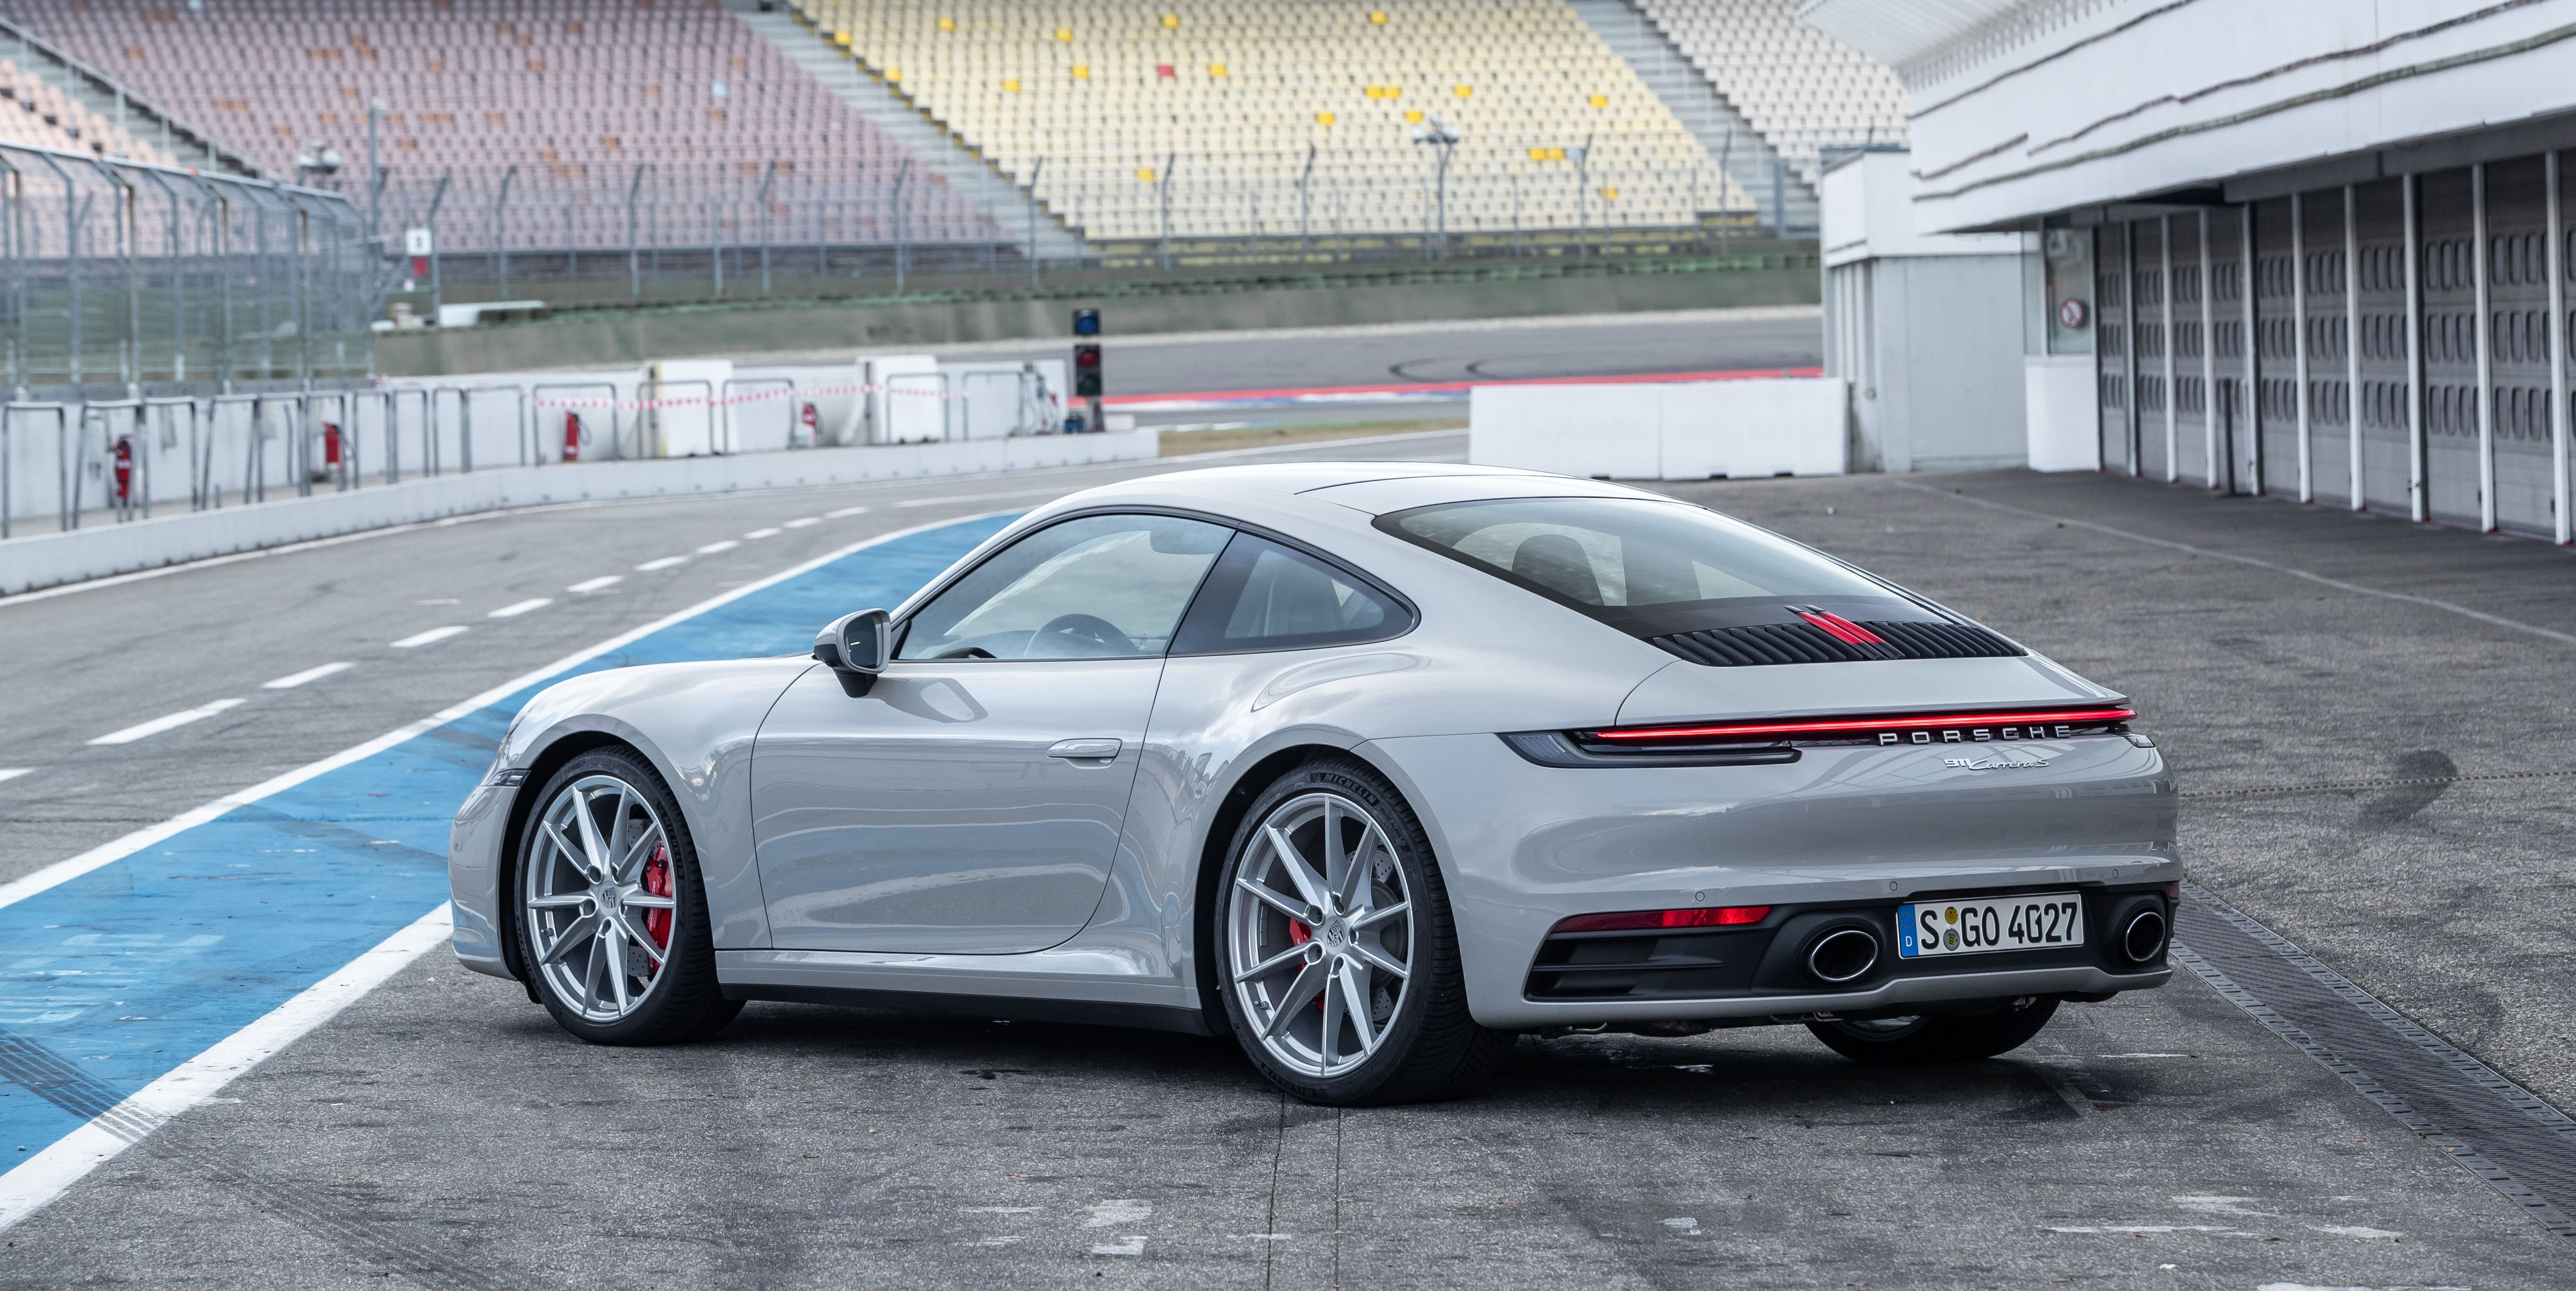 13 Things You Need to Know About the 2020 Porsche 911